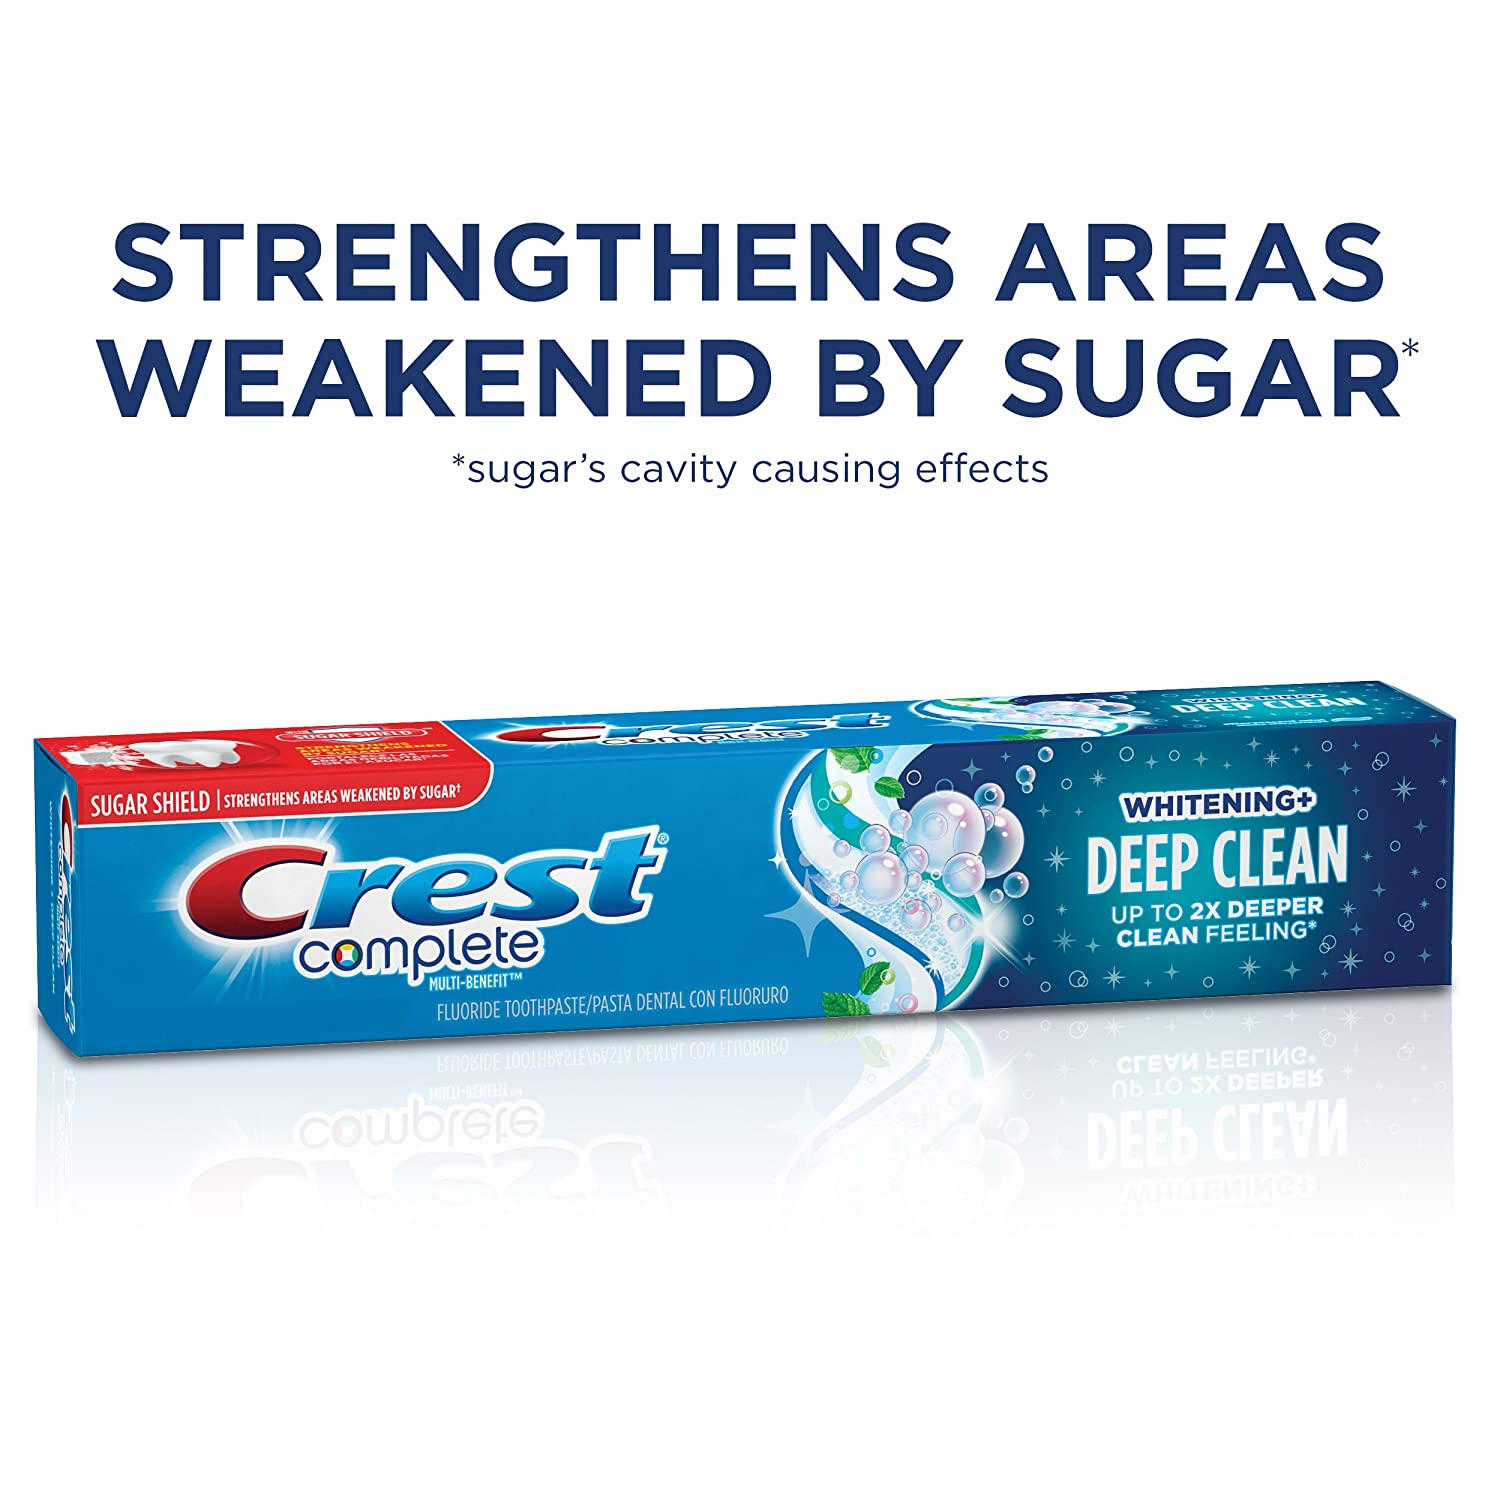 Amazon.com: Crest Complete Toothpaste Whitening + Deep Clean, Effervescent Mint 5.80 oz: Beauty